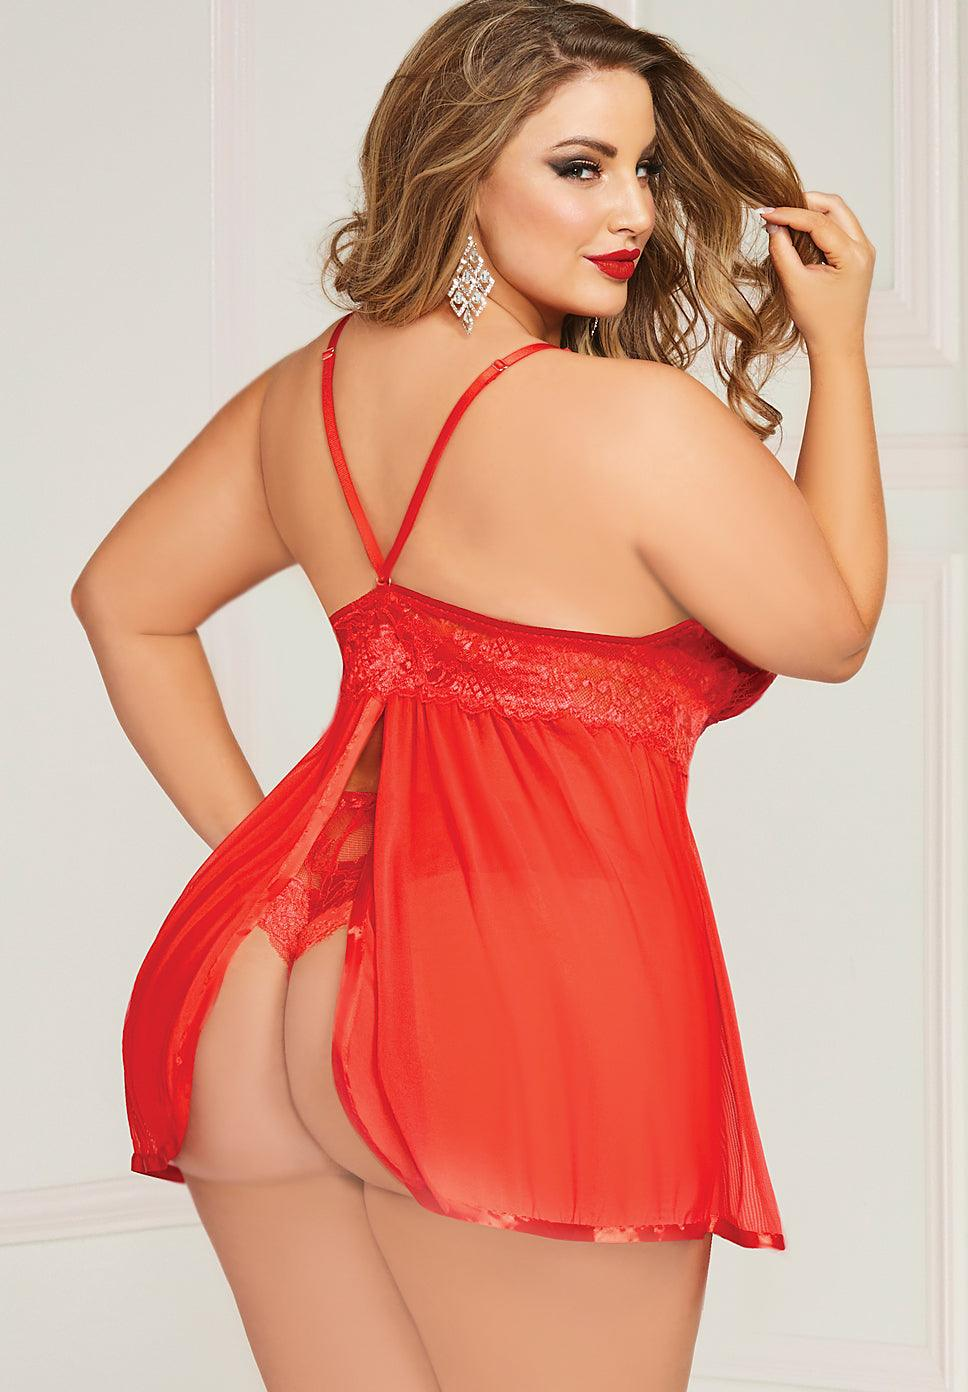 Cherry Berry Lace Babydoll - Queen